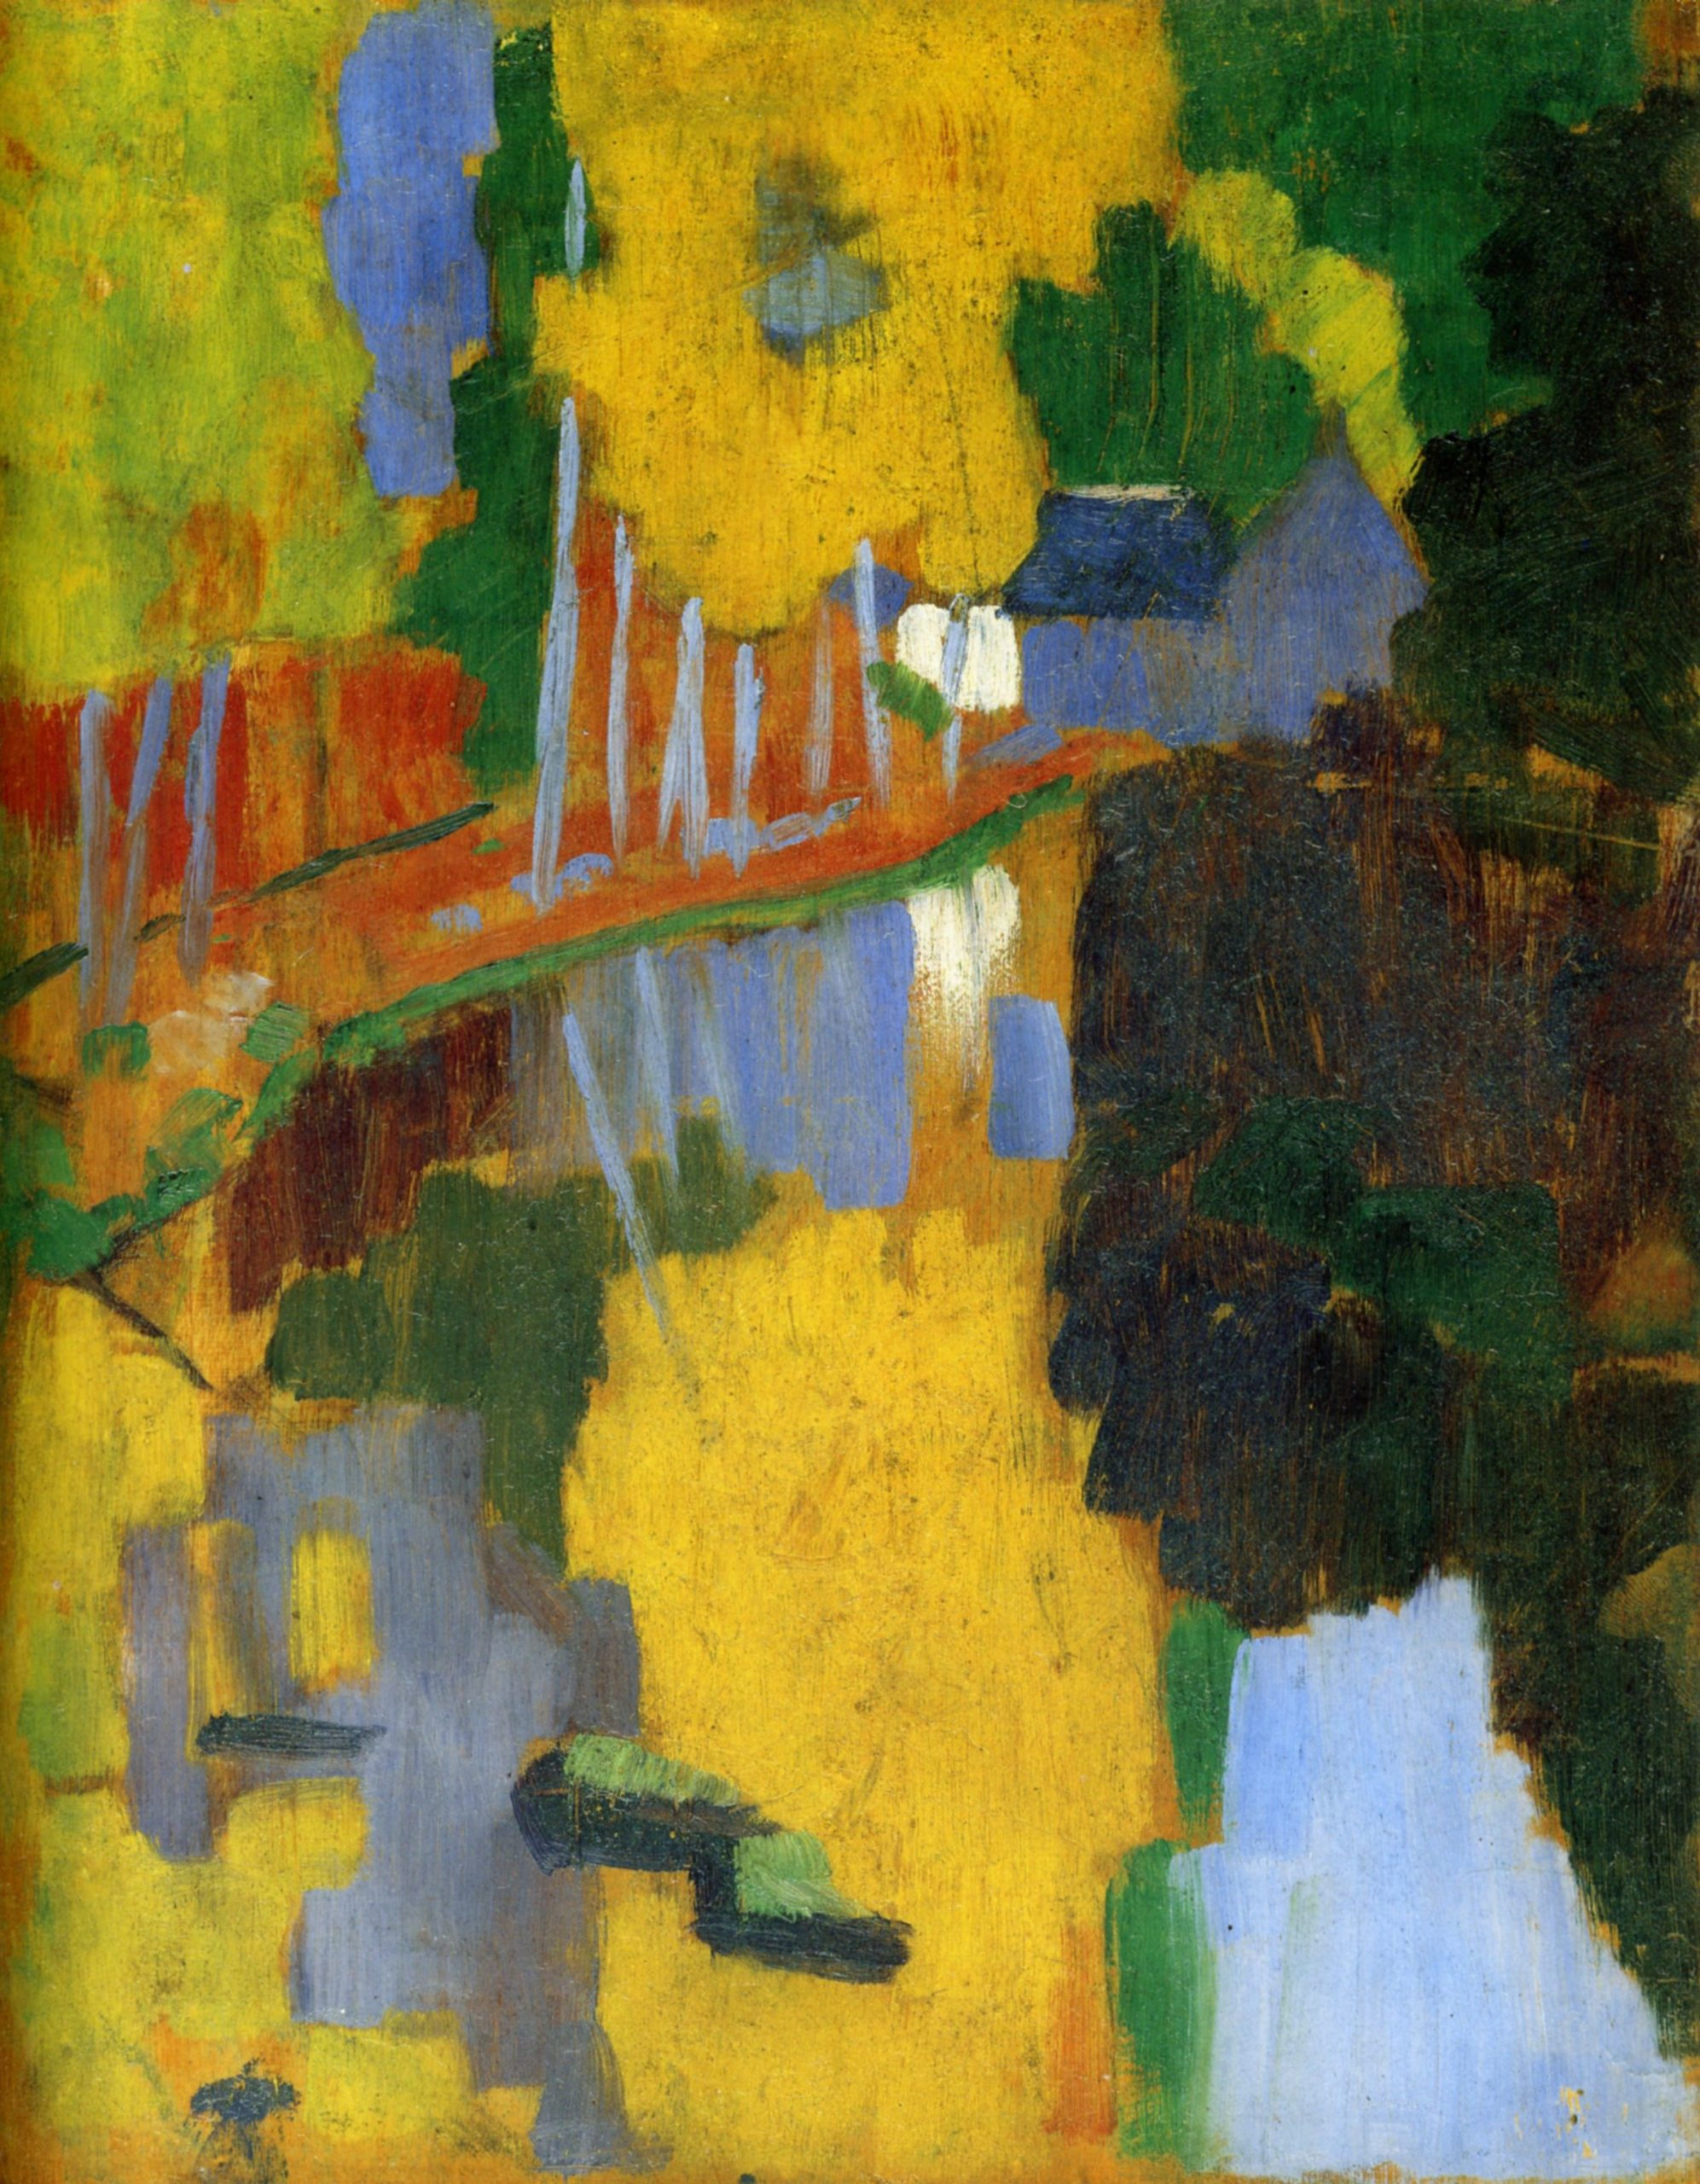 Paul Sérusier, The Talisman, 1888, oil on panel, 27 x 21 cm (Musée d'Orsay)